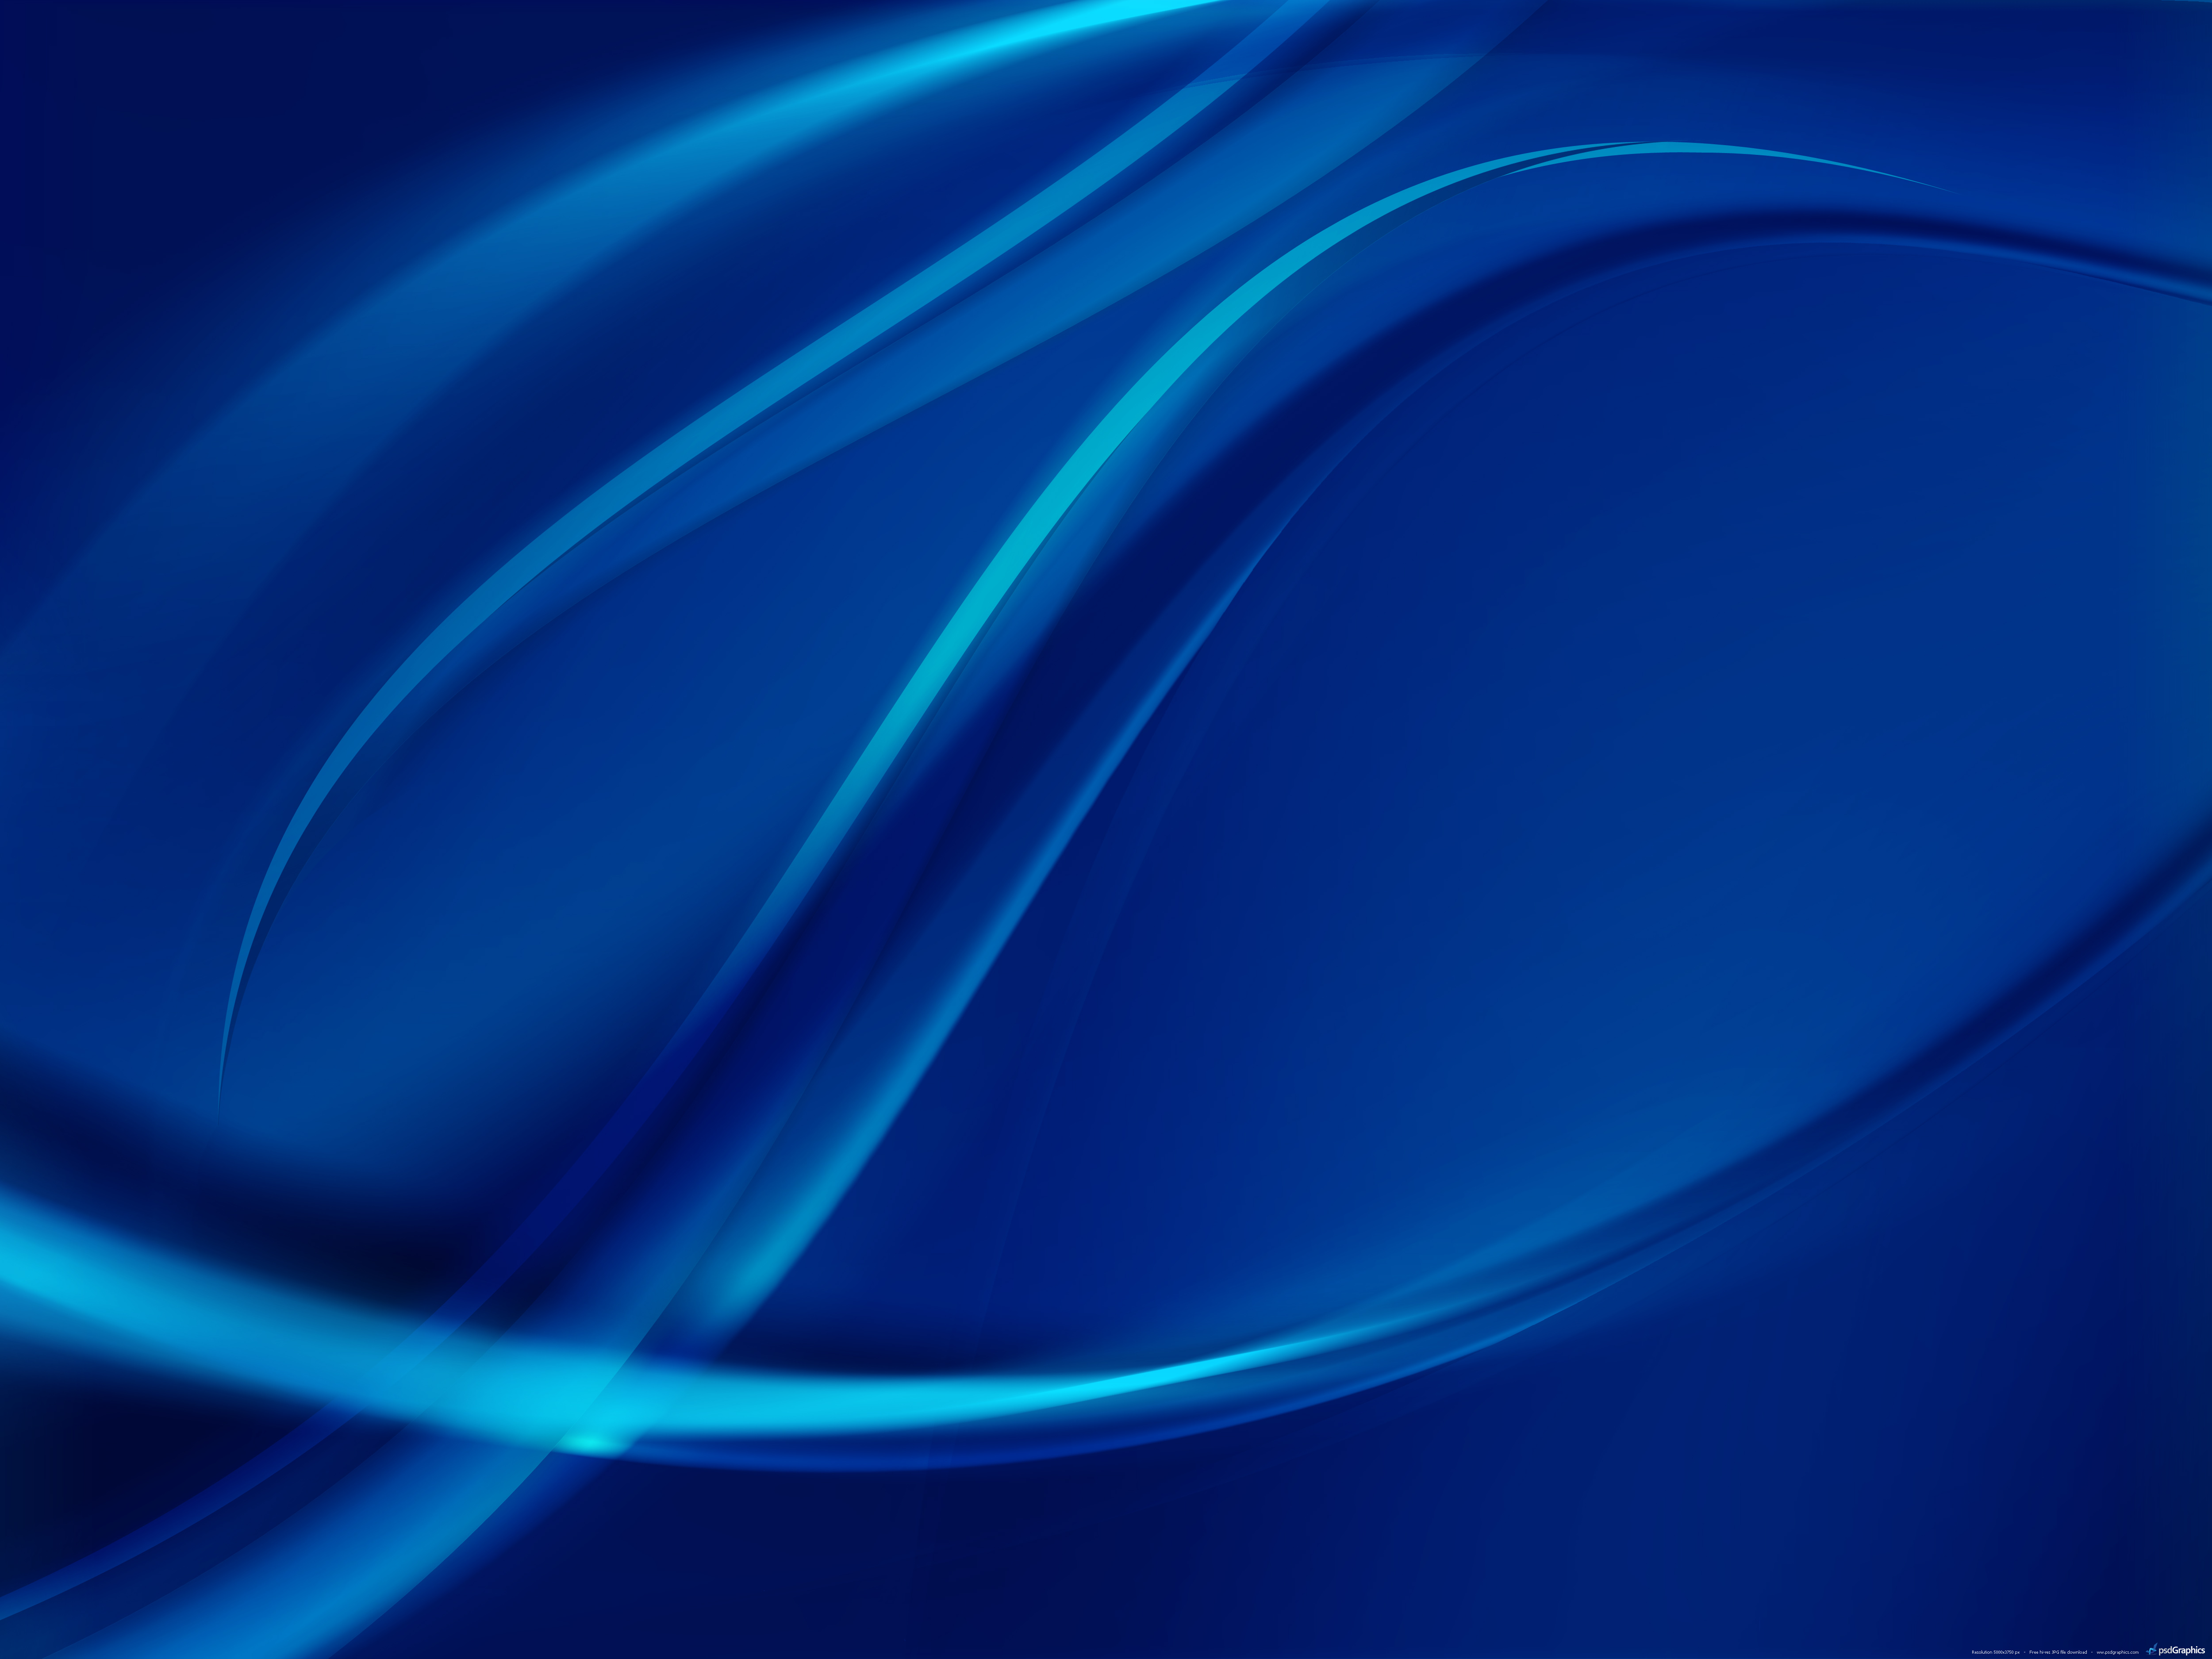 Abstract wave background | PSDGraphics